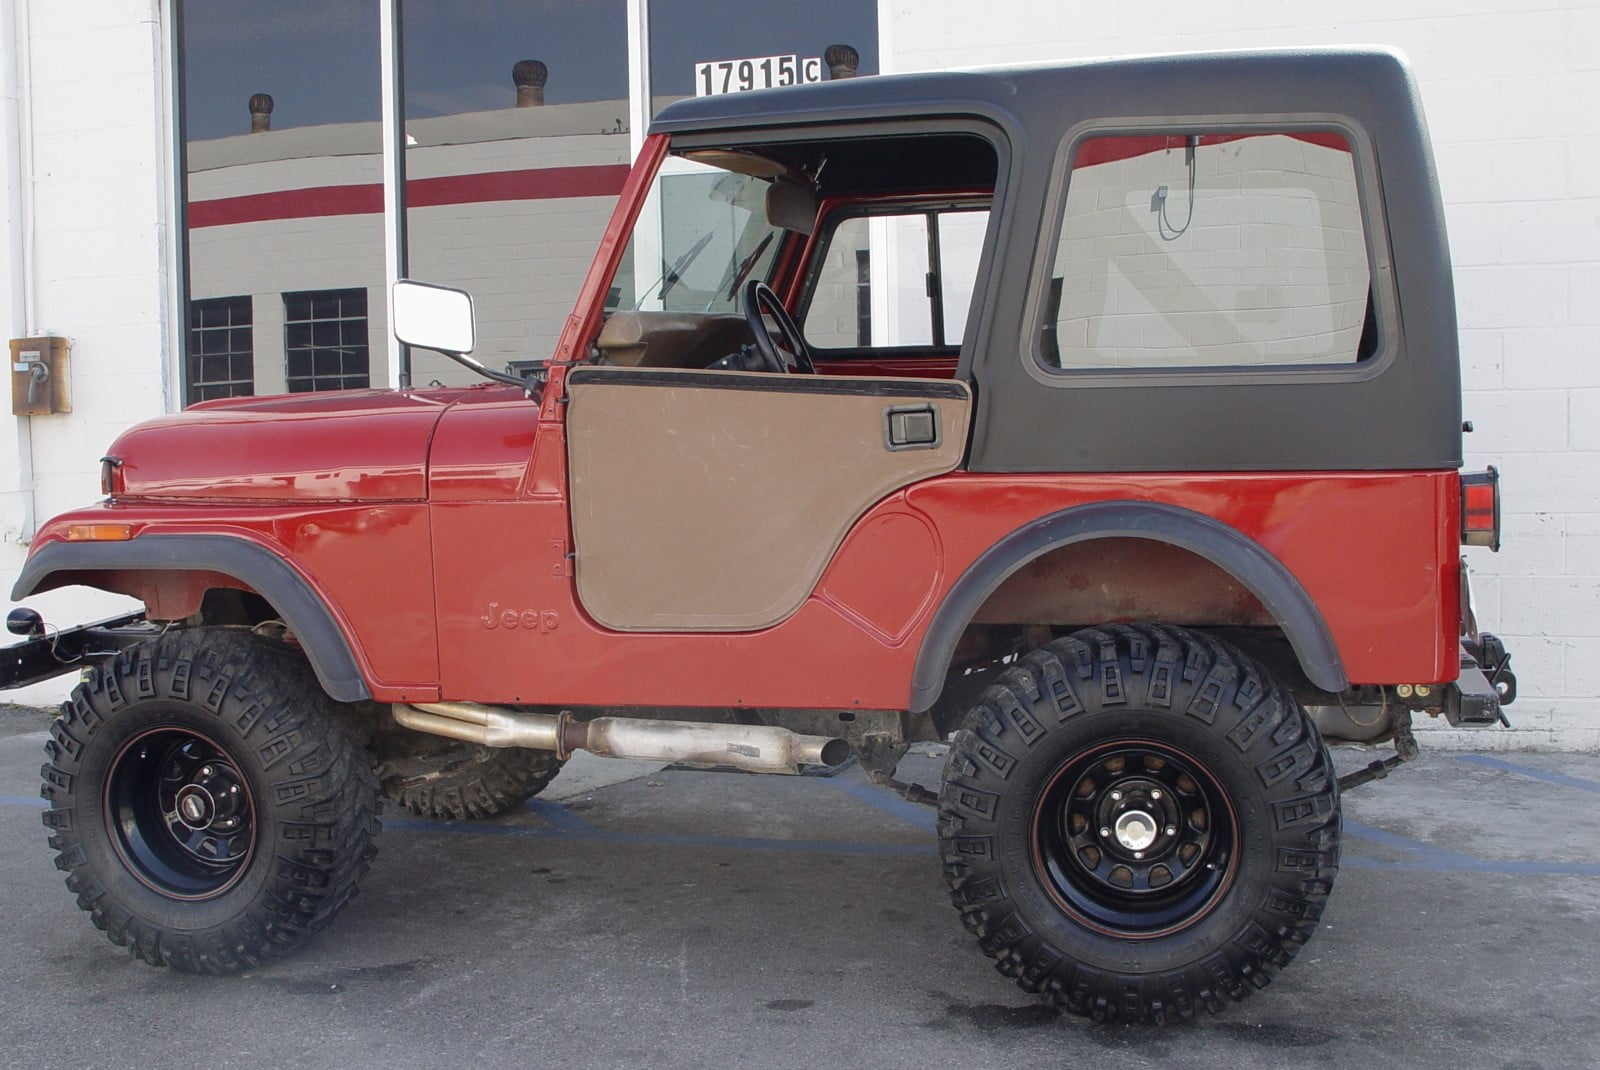 Category ... & Our CJ5 Jeep Story